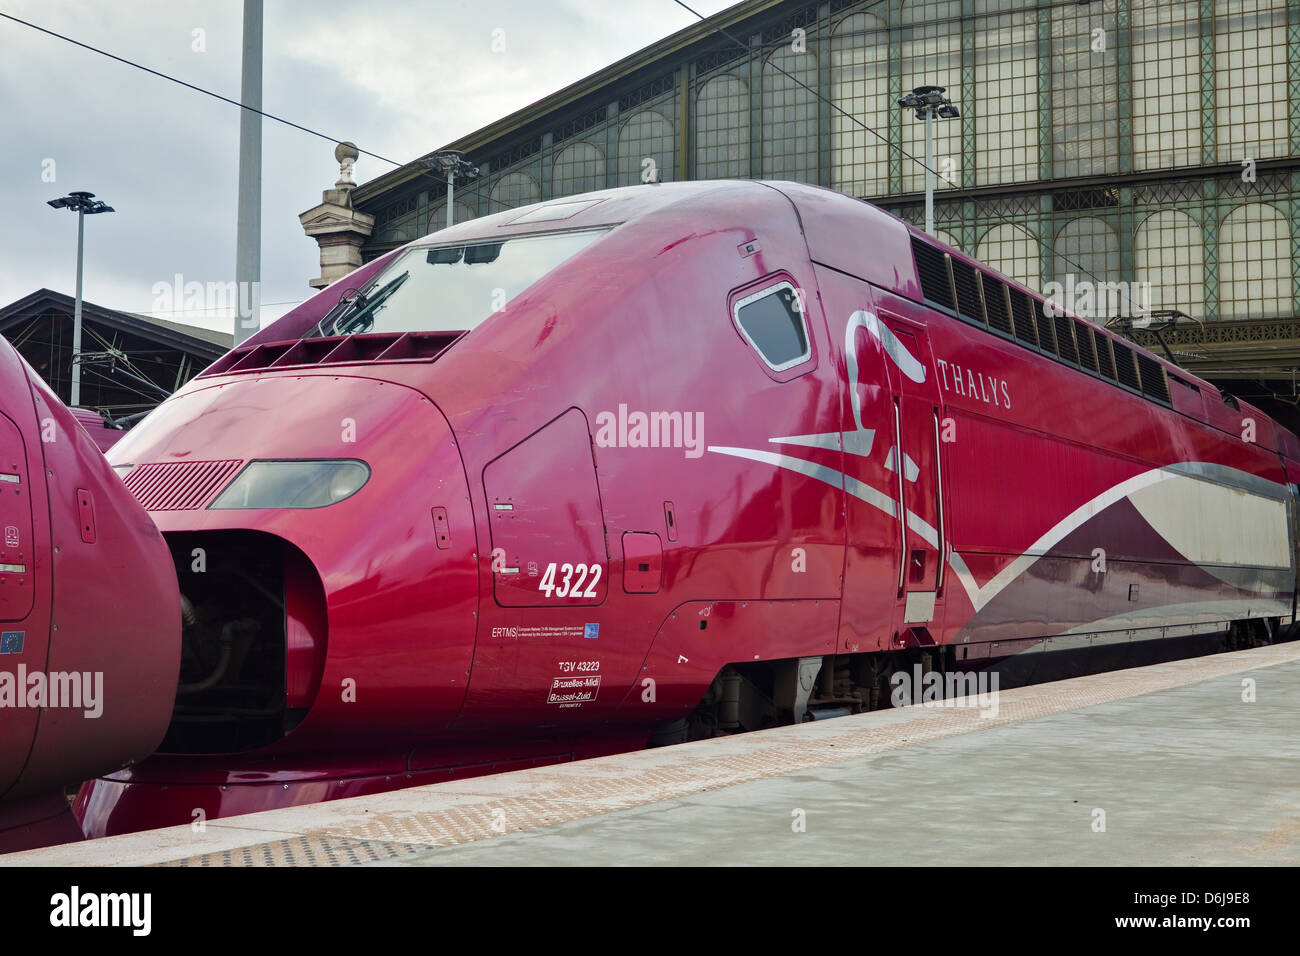 A Thalys high speed train awaits departure at Gare du Nord railway station, Paris, France, Europe - Stock Image